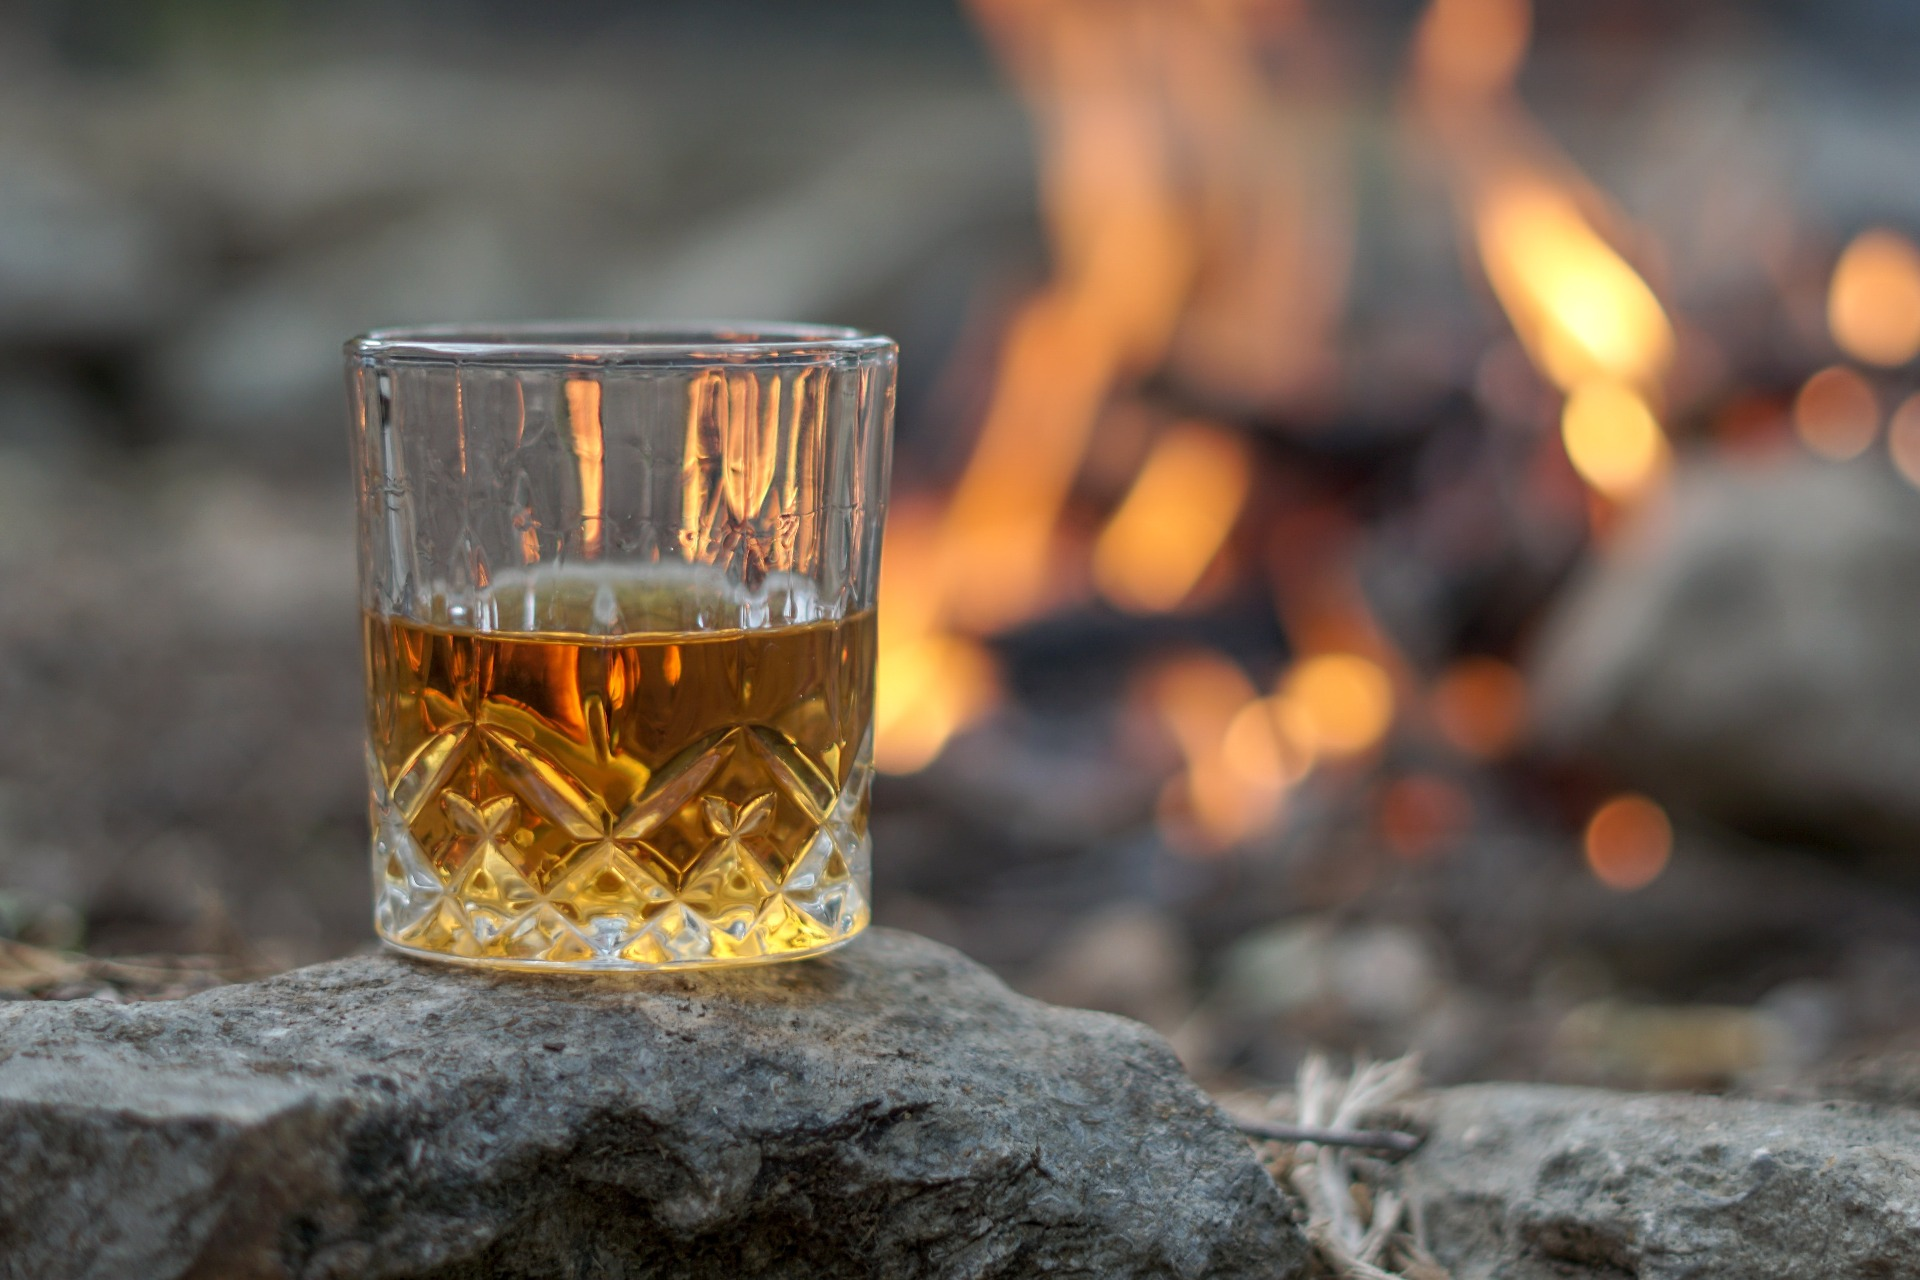 A glass of whisky in front of a fire